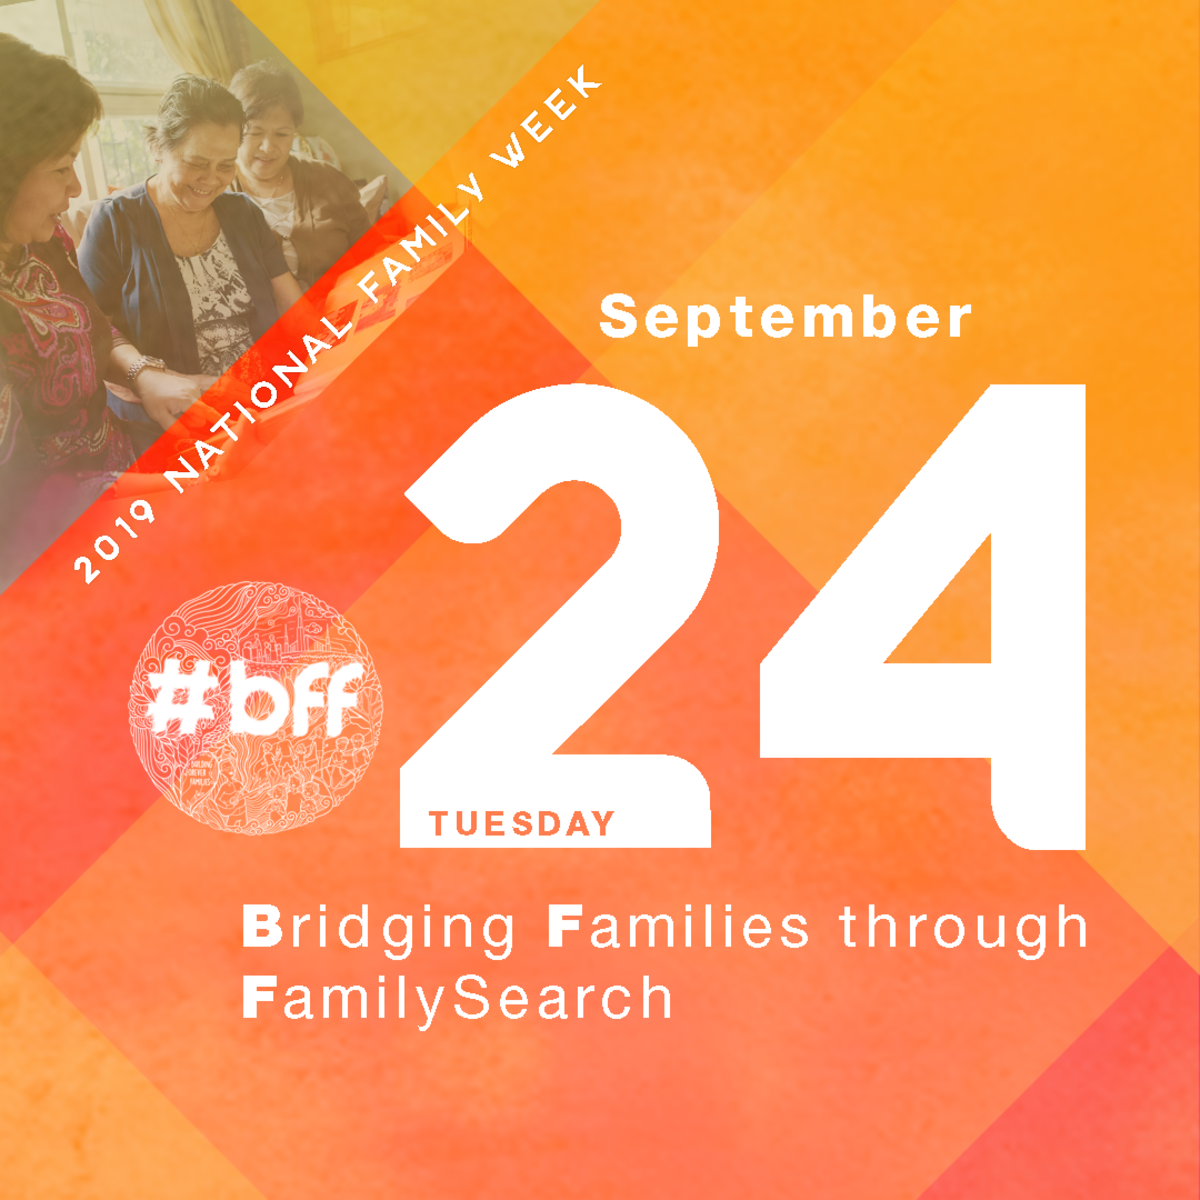 Bridging Families through FamilySearch